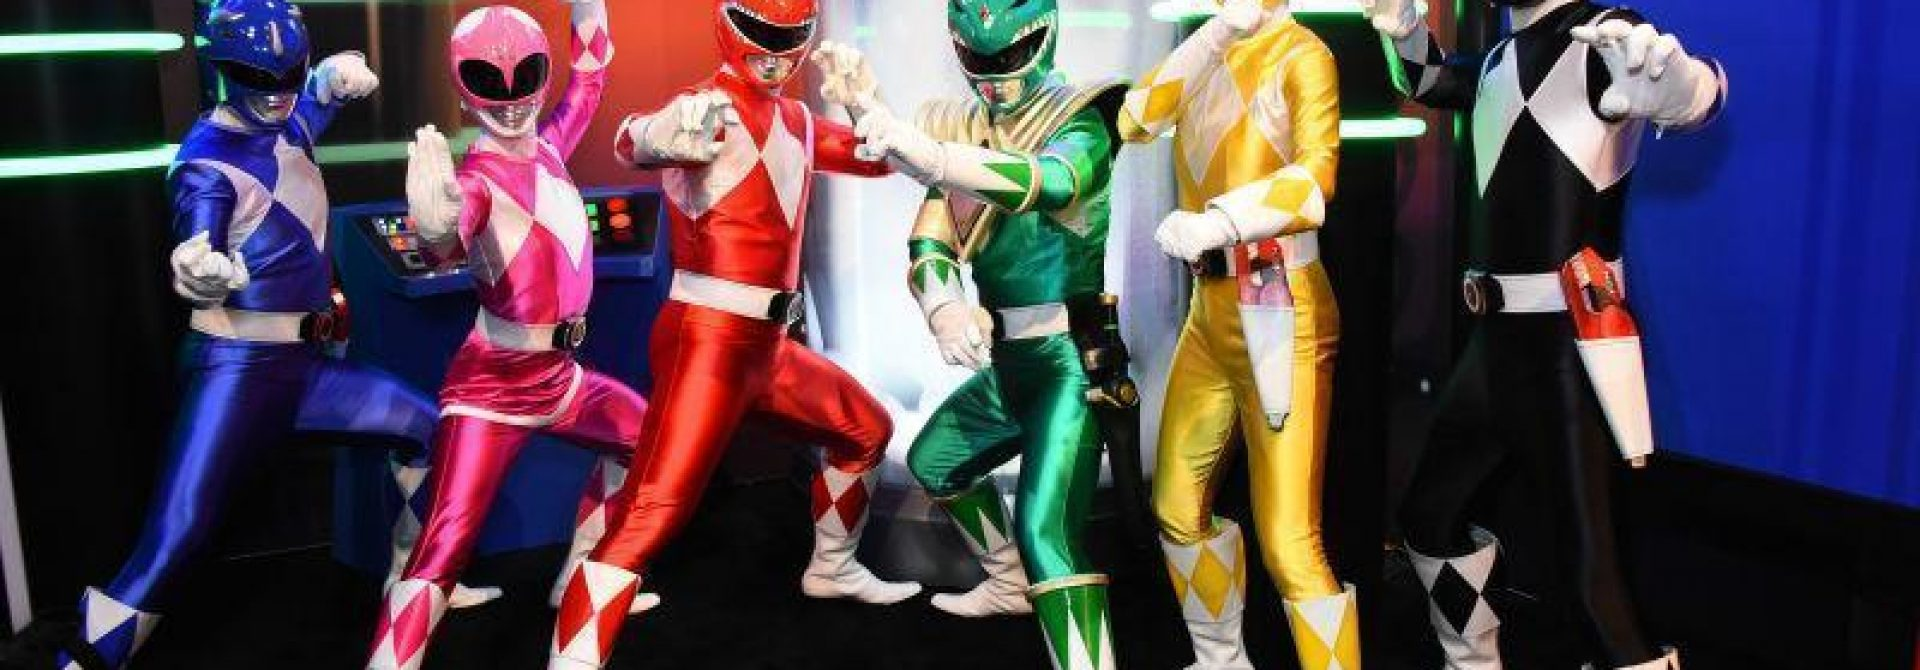 Hasbro Owns The Power Rangers Now